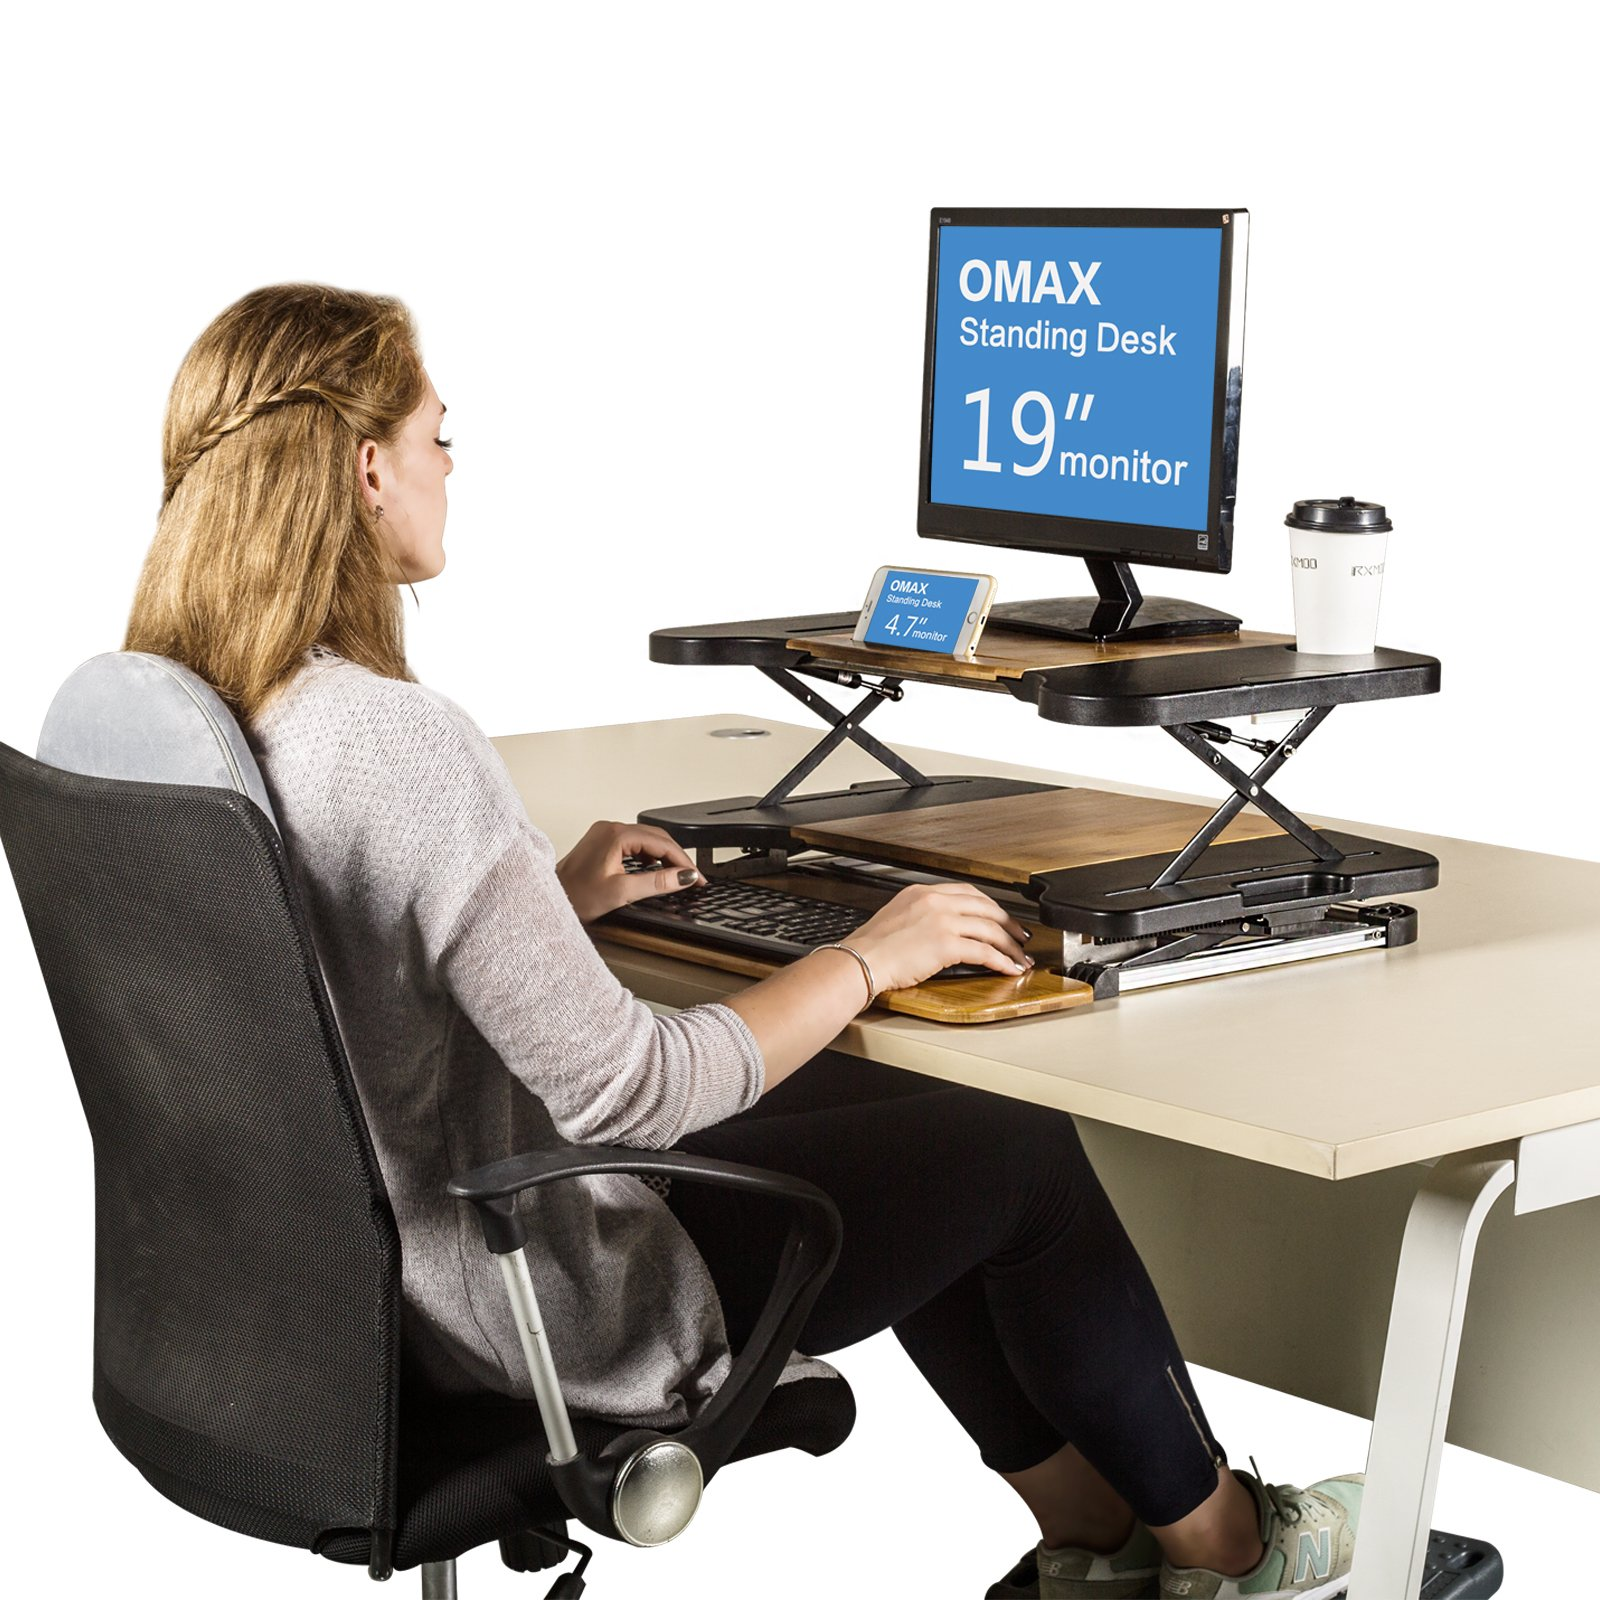 Standing Desk- Omax Heigh Adjustable Desk/Table Comfortable Stand Up Table Removed Computer Laptop Stand Desk Working Table by RXMOO (Image #2)